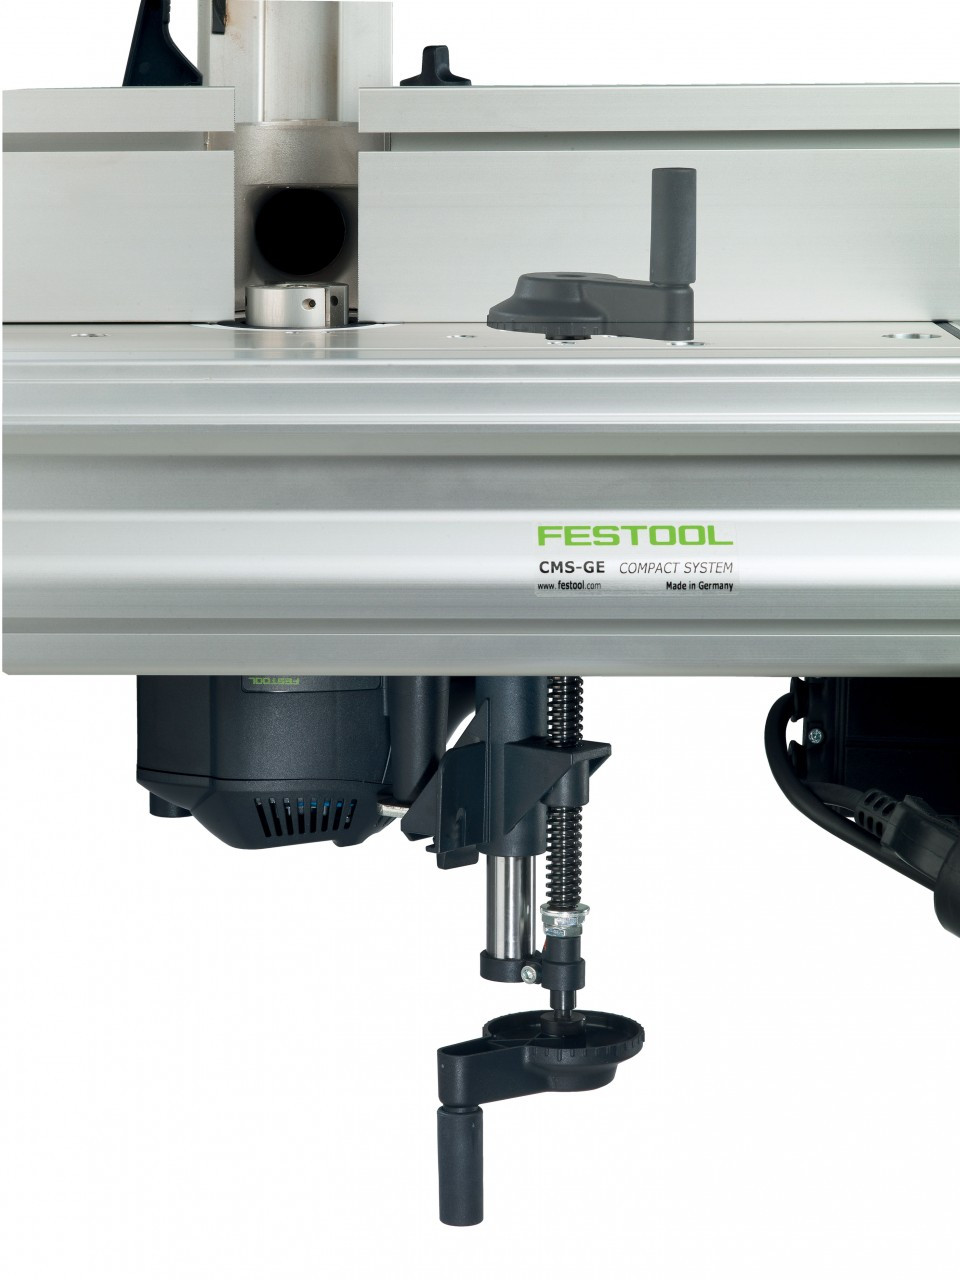 Festool cms ge router table set 203158 replaces 57000026 greentooth Choice Image